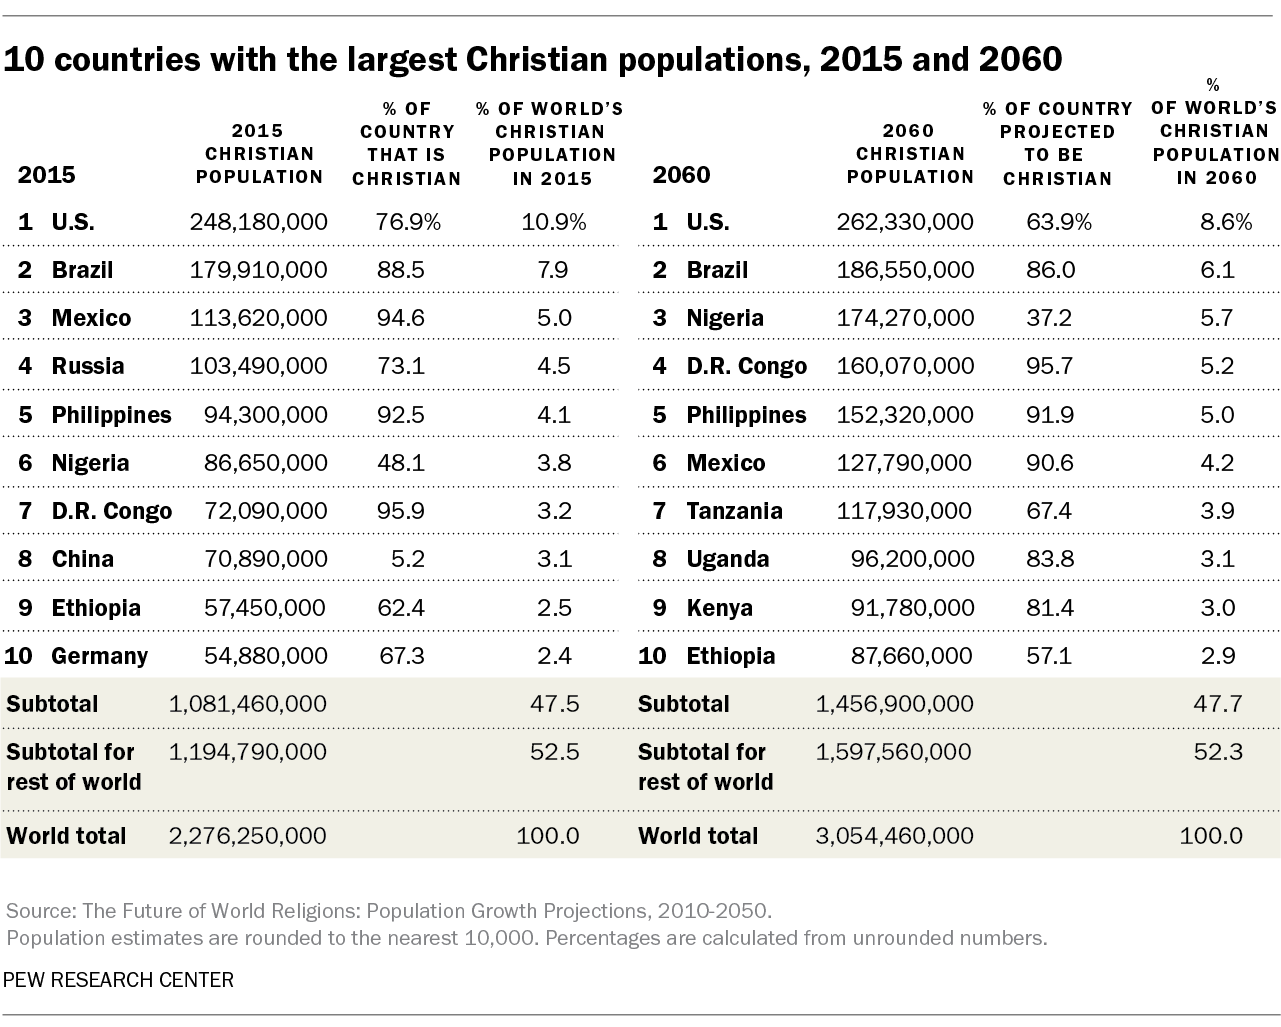 10 countries with the largest Christian populations, 2015 and 2060